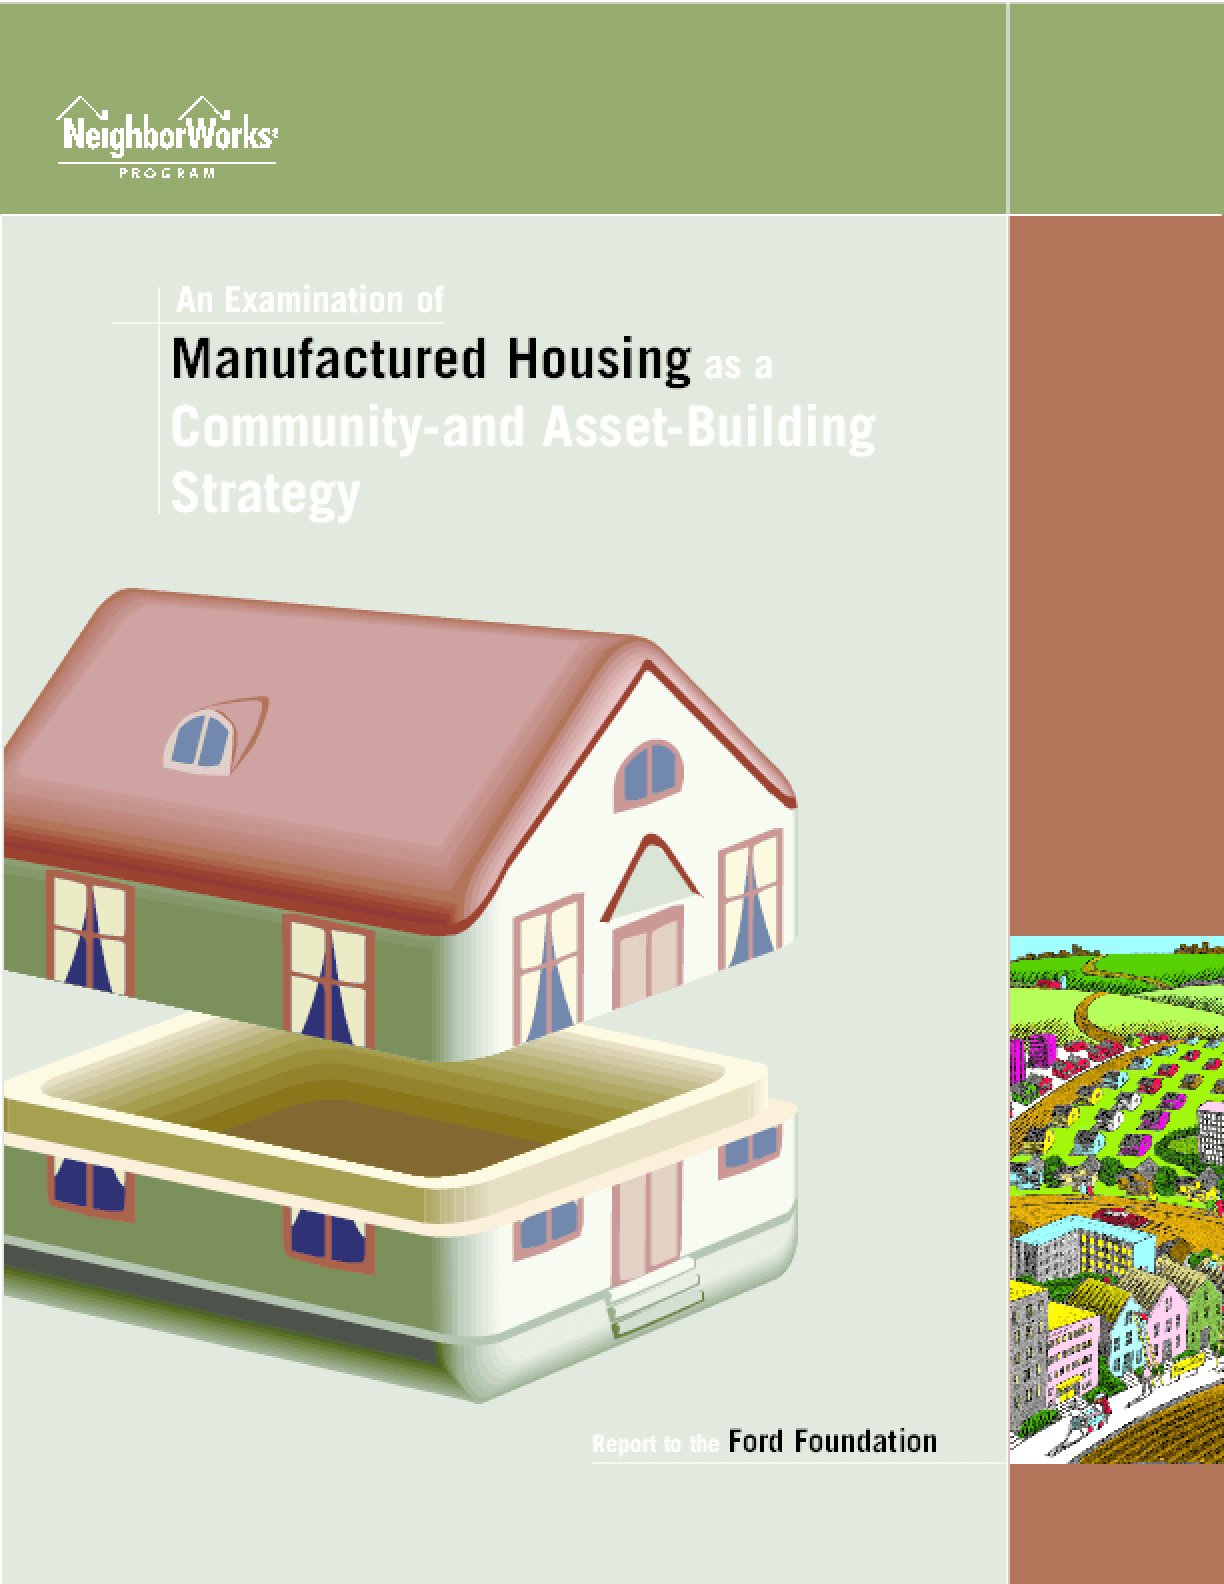 An Examination of Manufactured Housing as a Community- and Asset-Building Strategy